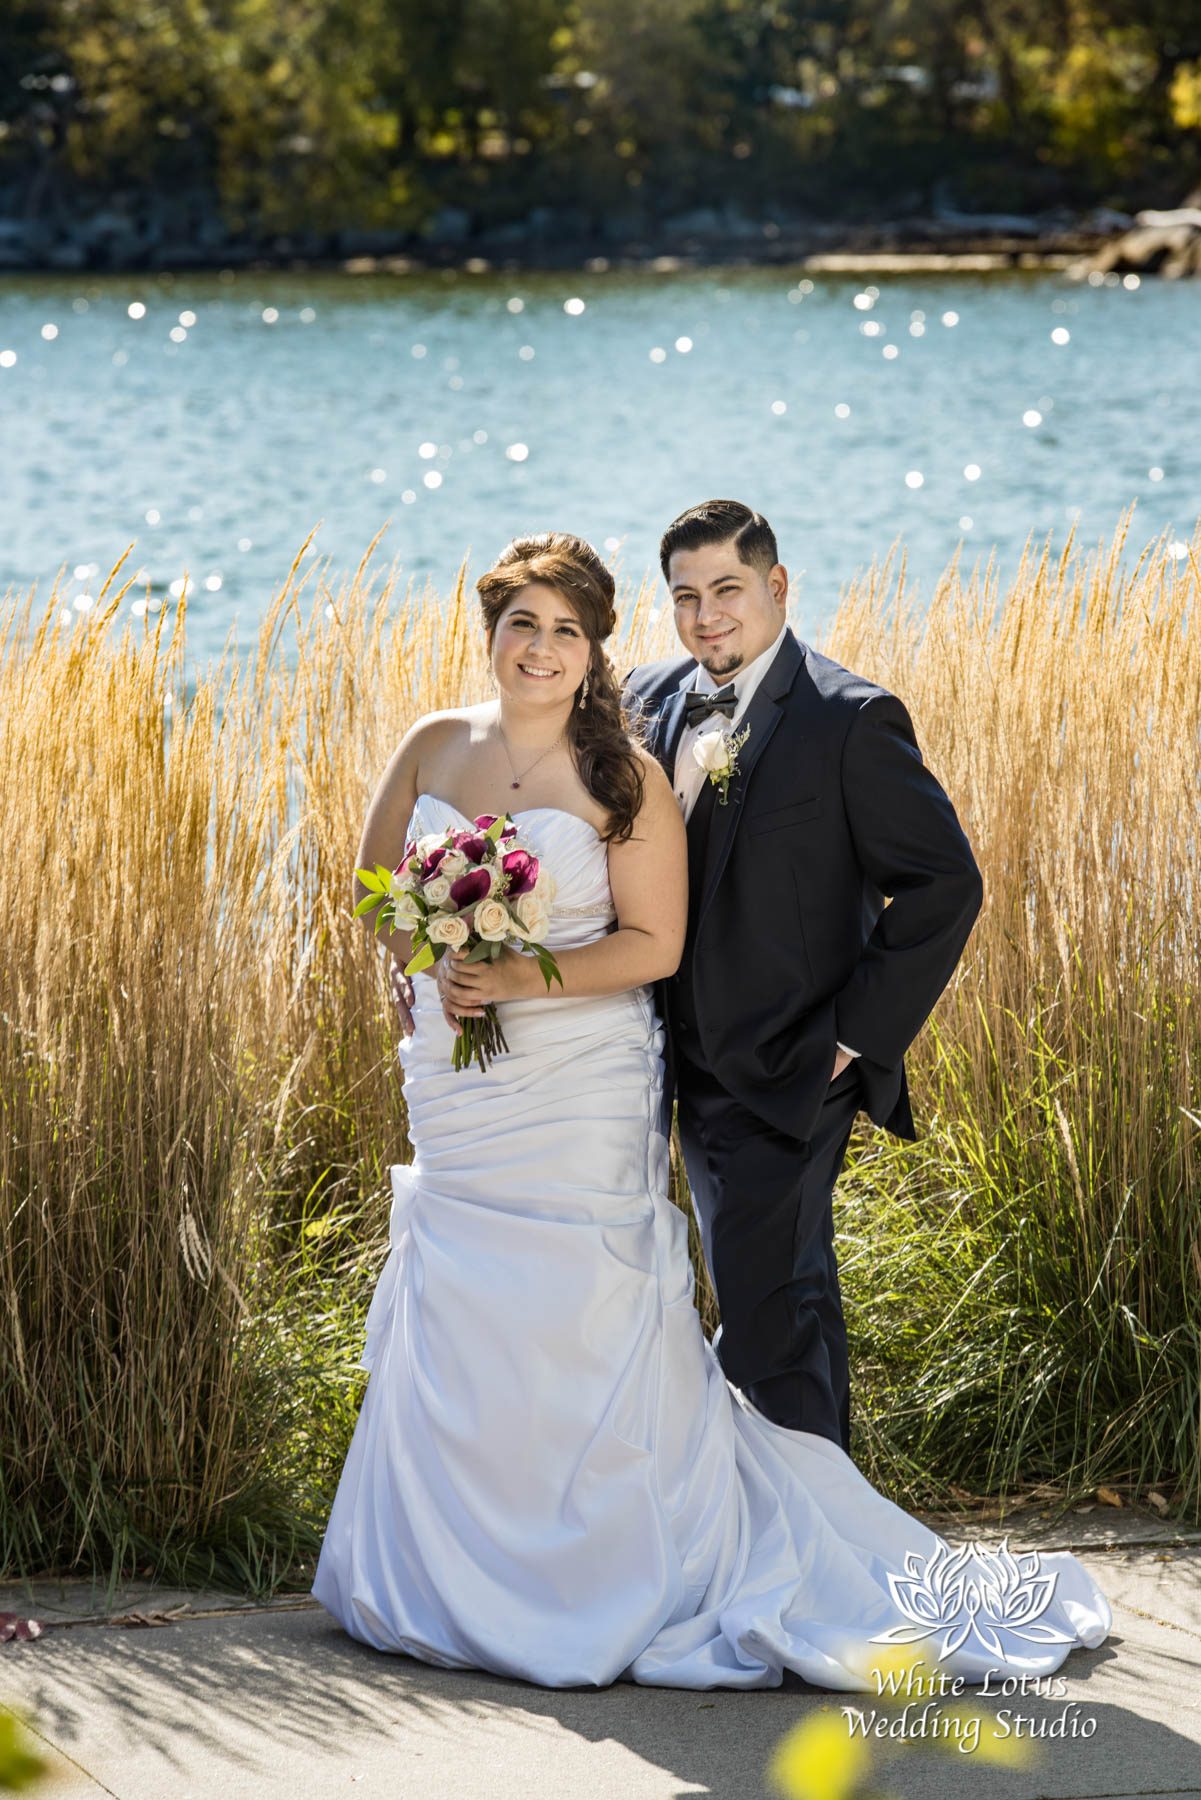 147 - www.wlws.ca - Wedding - The Waterside Inn - Mississauga